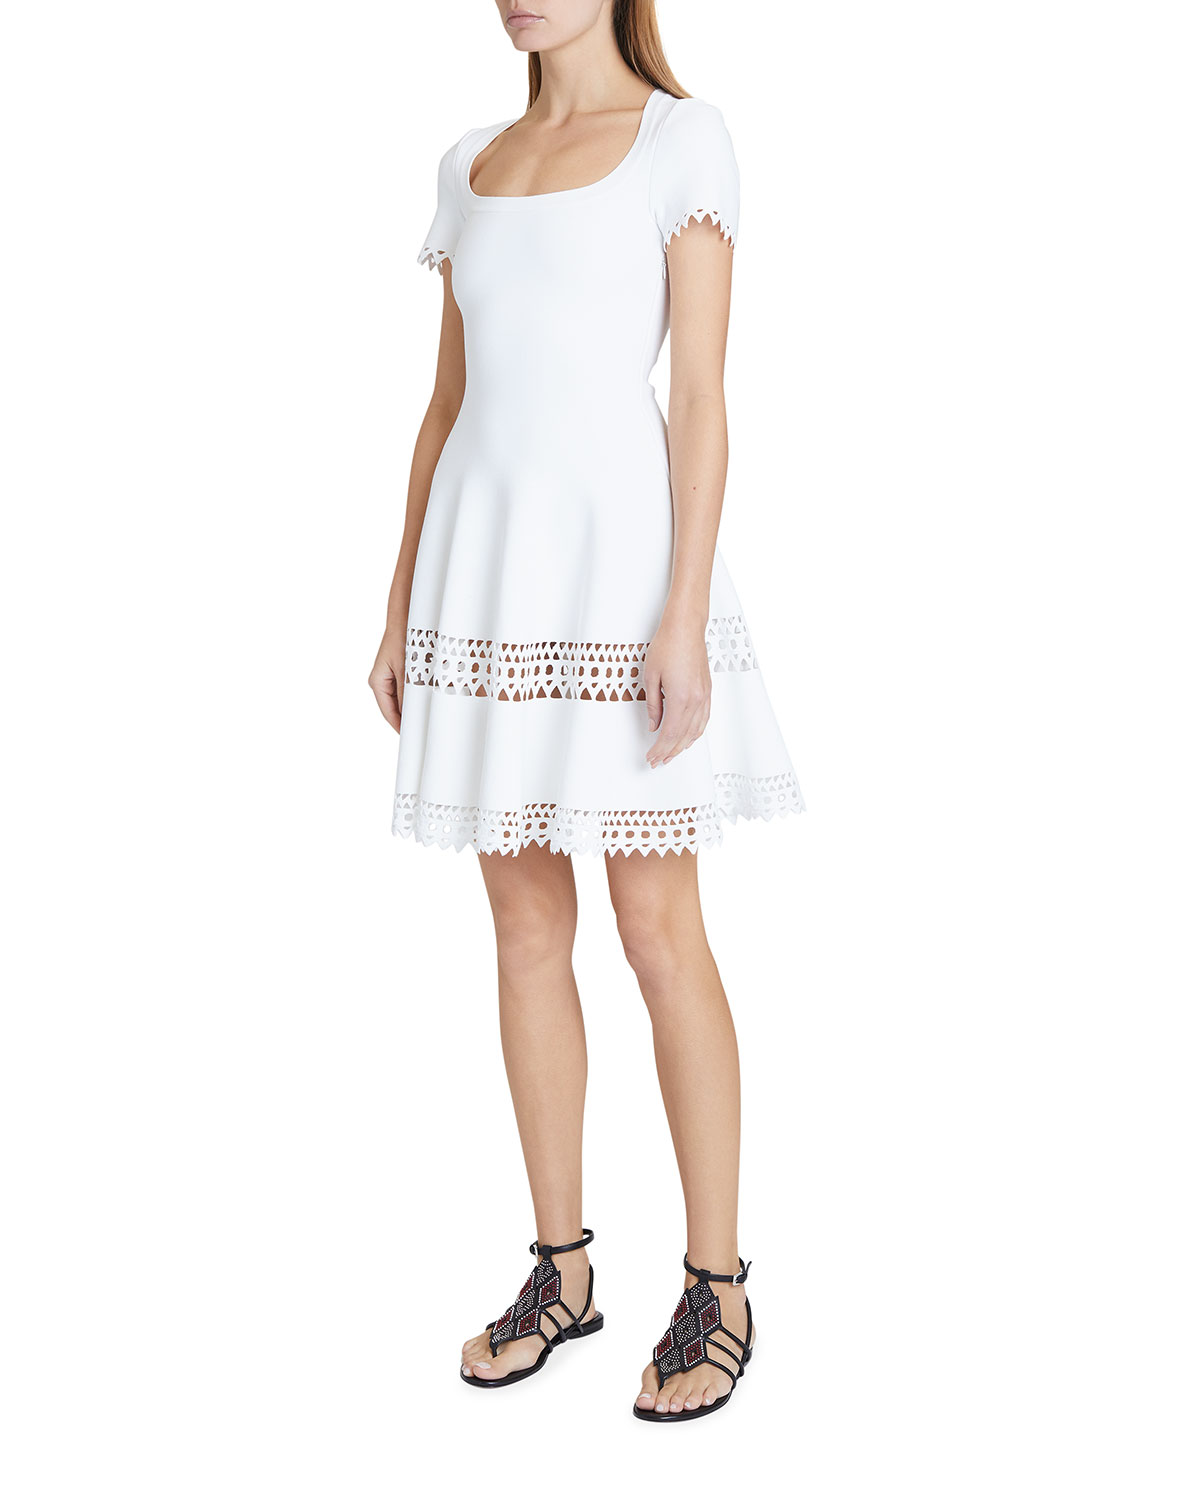 Edition 2016 The Vienne Dress